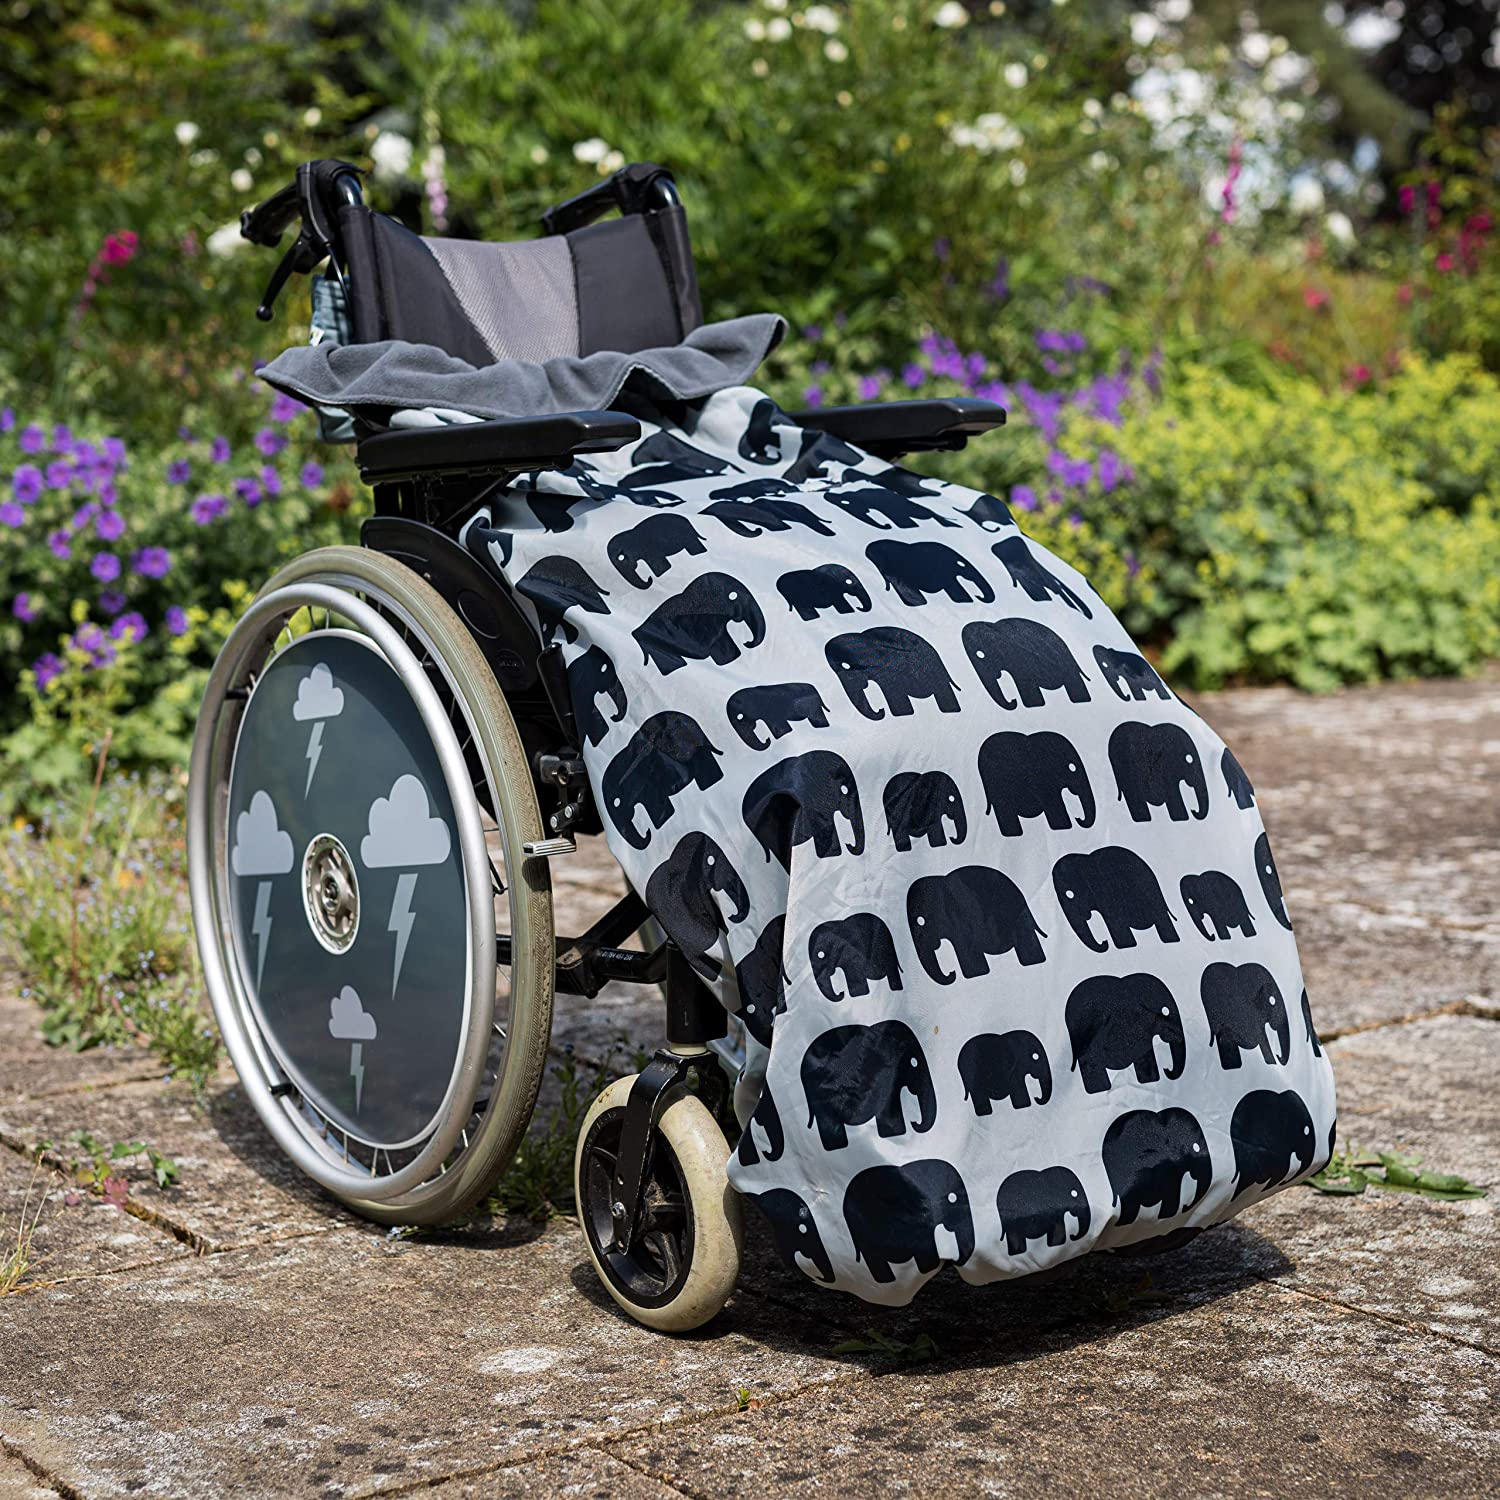 100% Waterproof Fleece lined Wheelchair Cosy Cover | Universal fit for manual and powered wheelchairs | Adult Size (grey elephant)